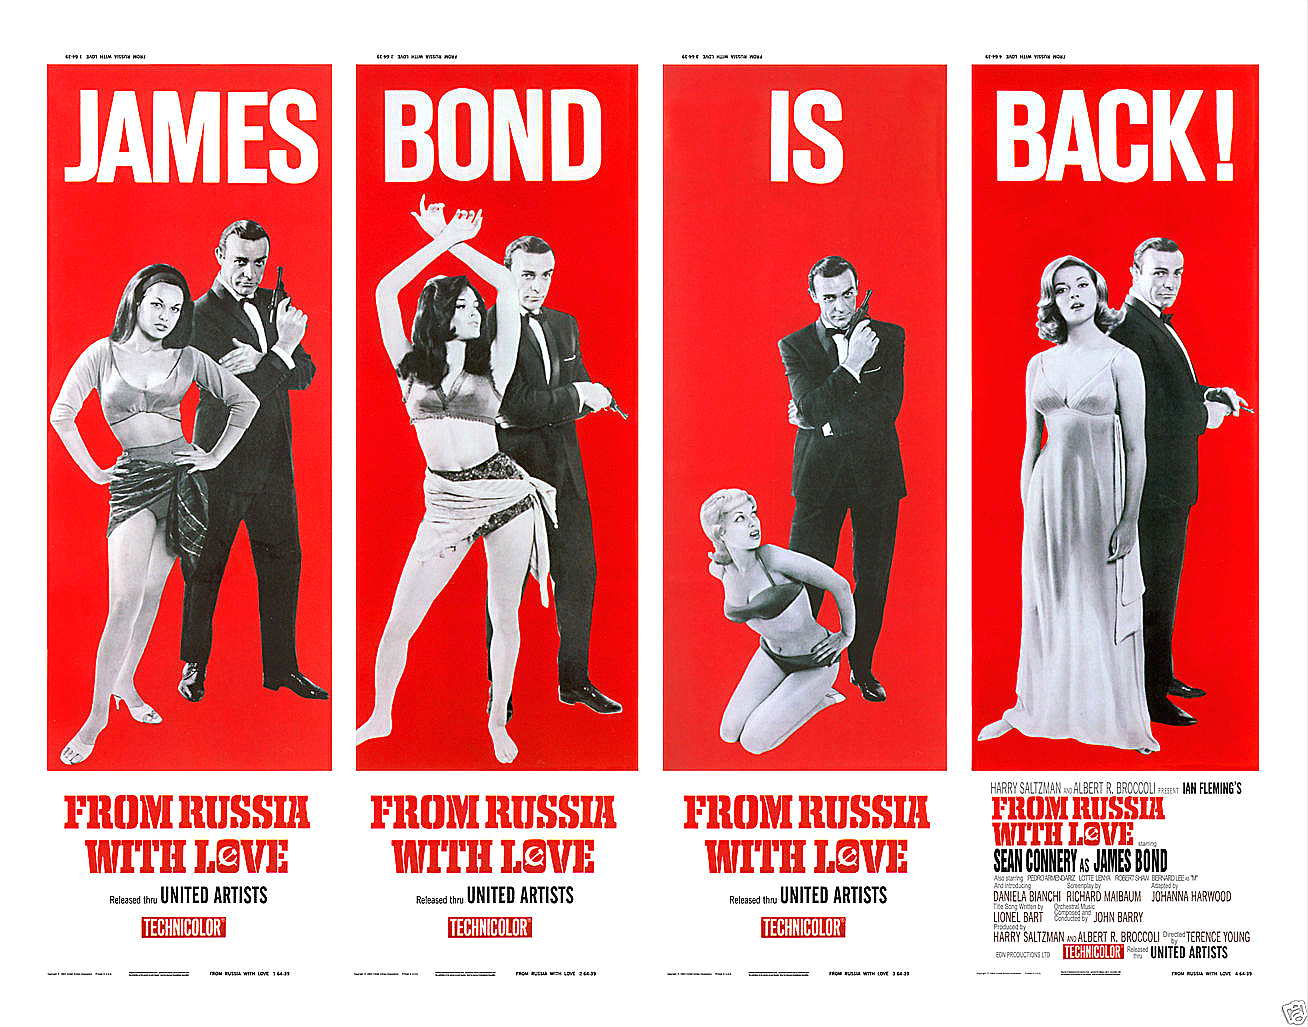 Primary image for FROM RUSSIA WITH LOVE POSTER 11X14 LOBBY CARD JAMES BOND IS BACK! 007 CONNERY